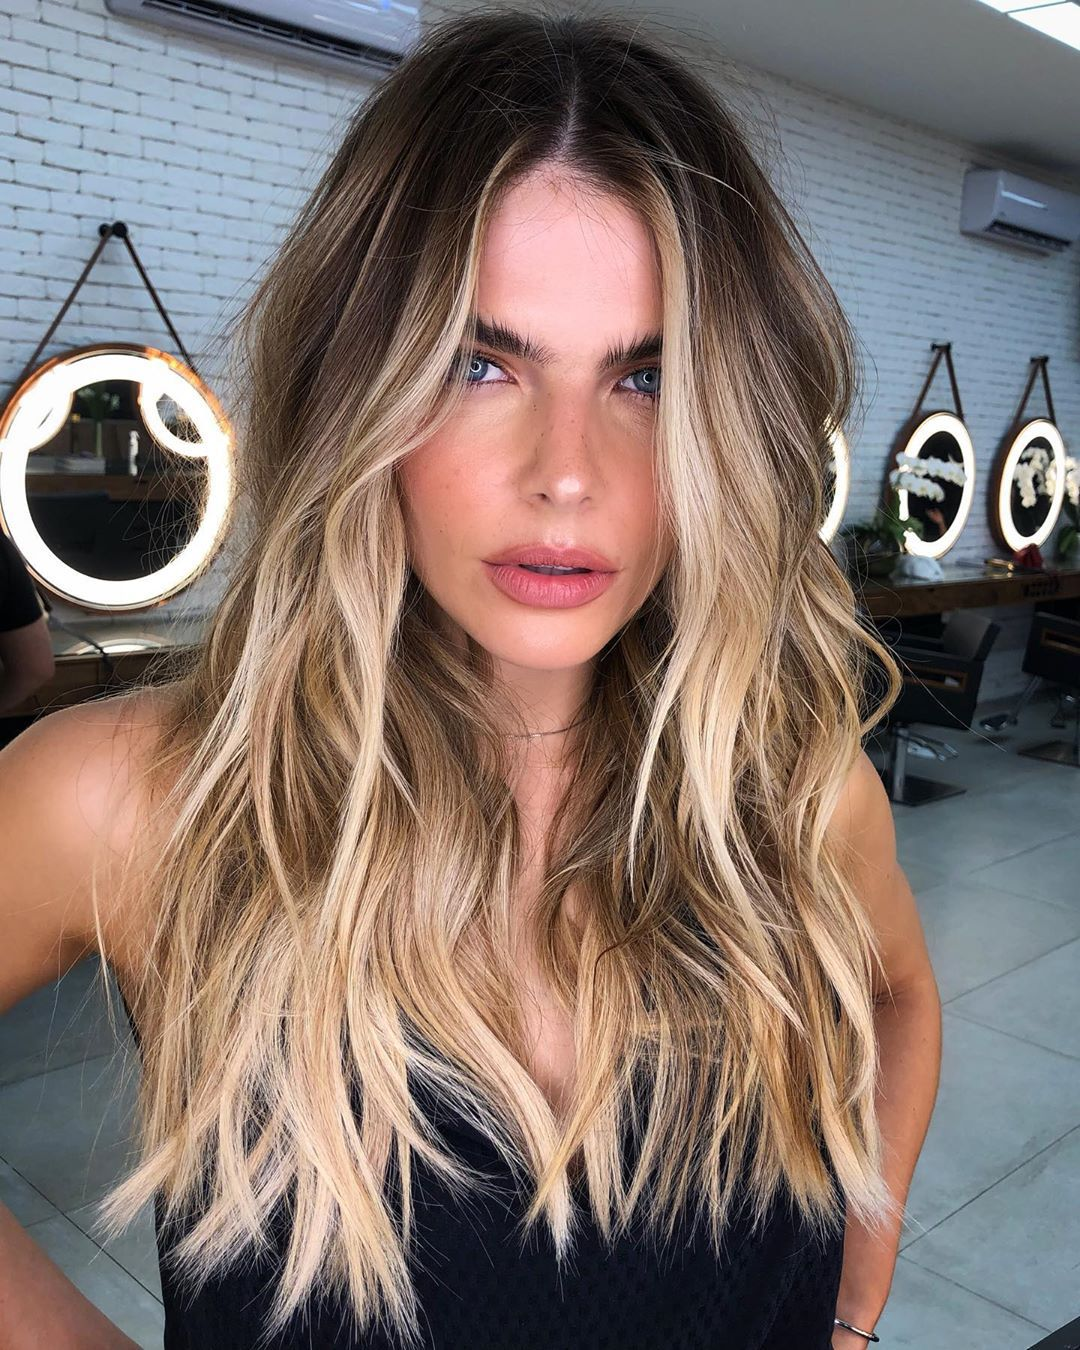 50 Best Hair Colors New Hair Color Ideas Trends For 2020 Hair Adviser In 2020 Hair Styles Hair Inspiration Color Brown Hair Balayage